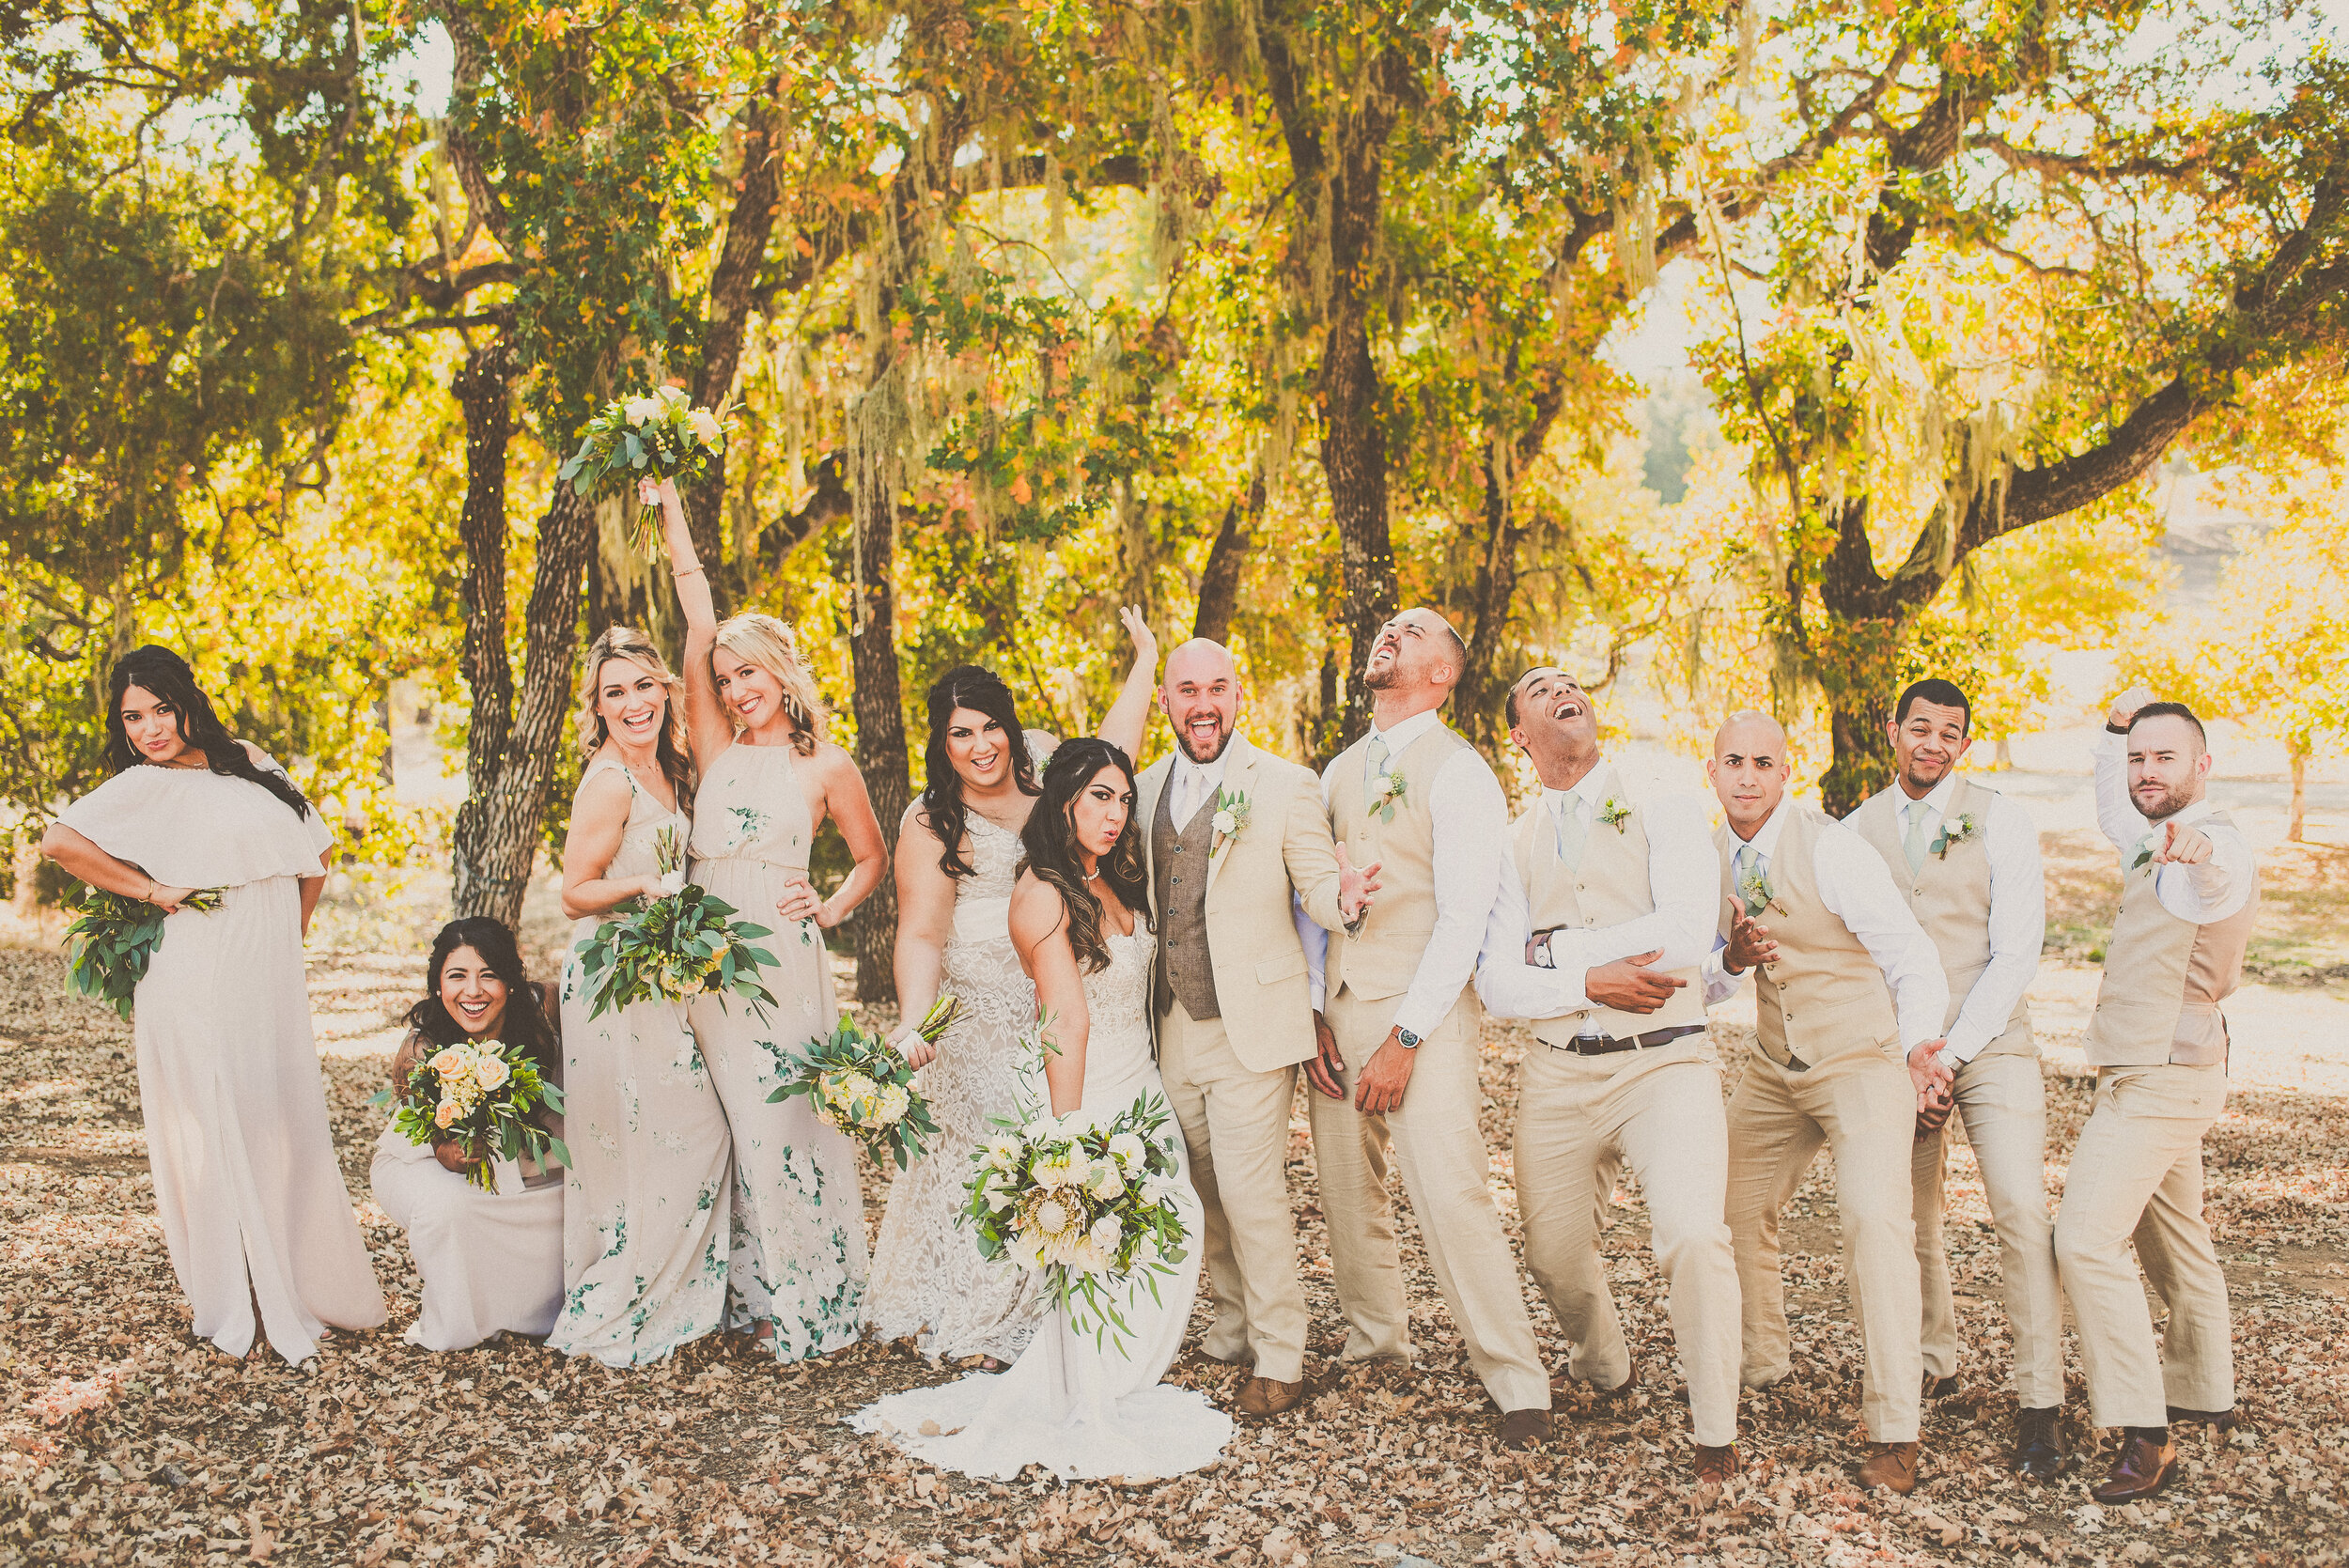 Motter Wedding - Wedding Party Portraits-3.jpg